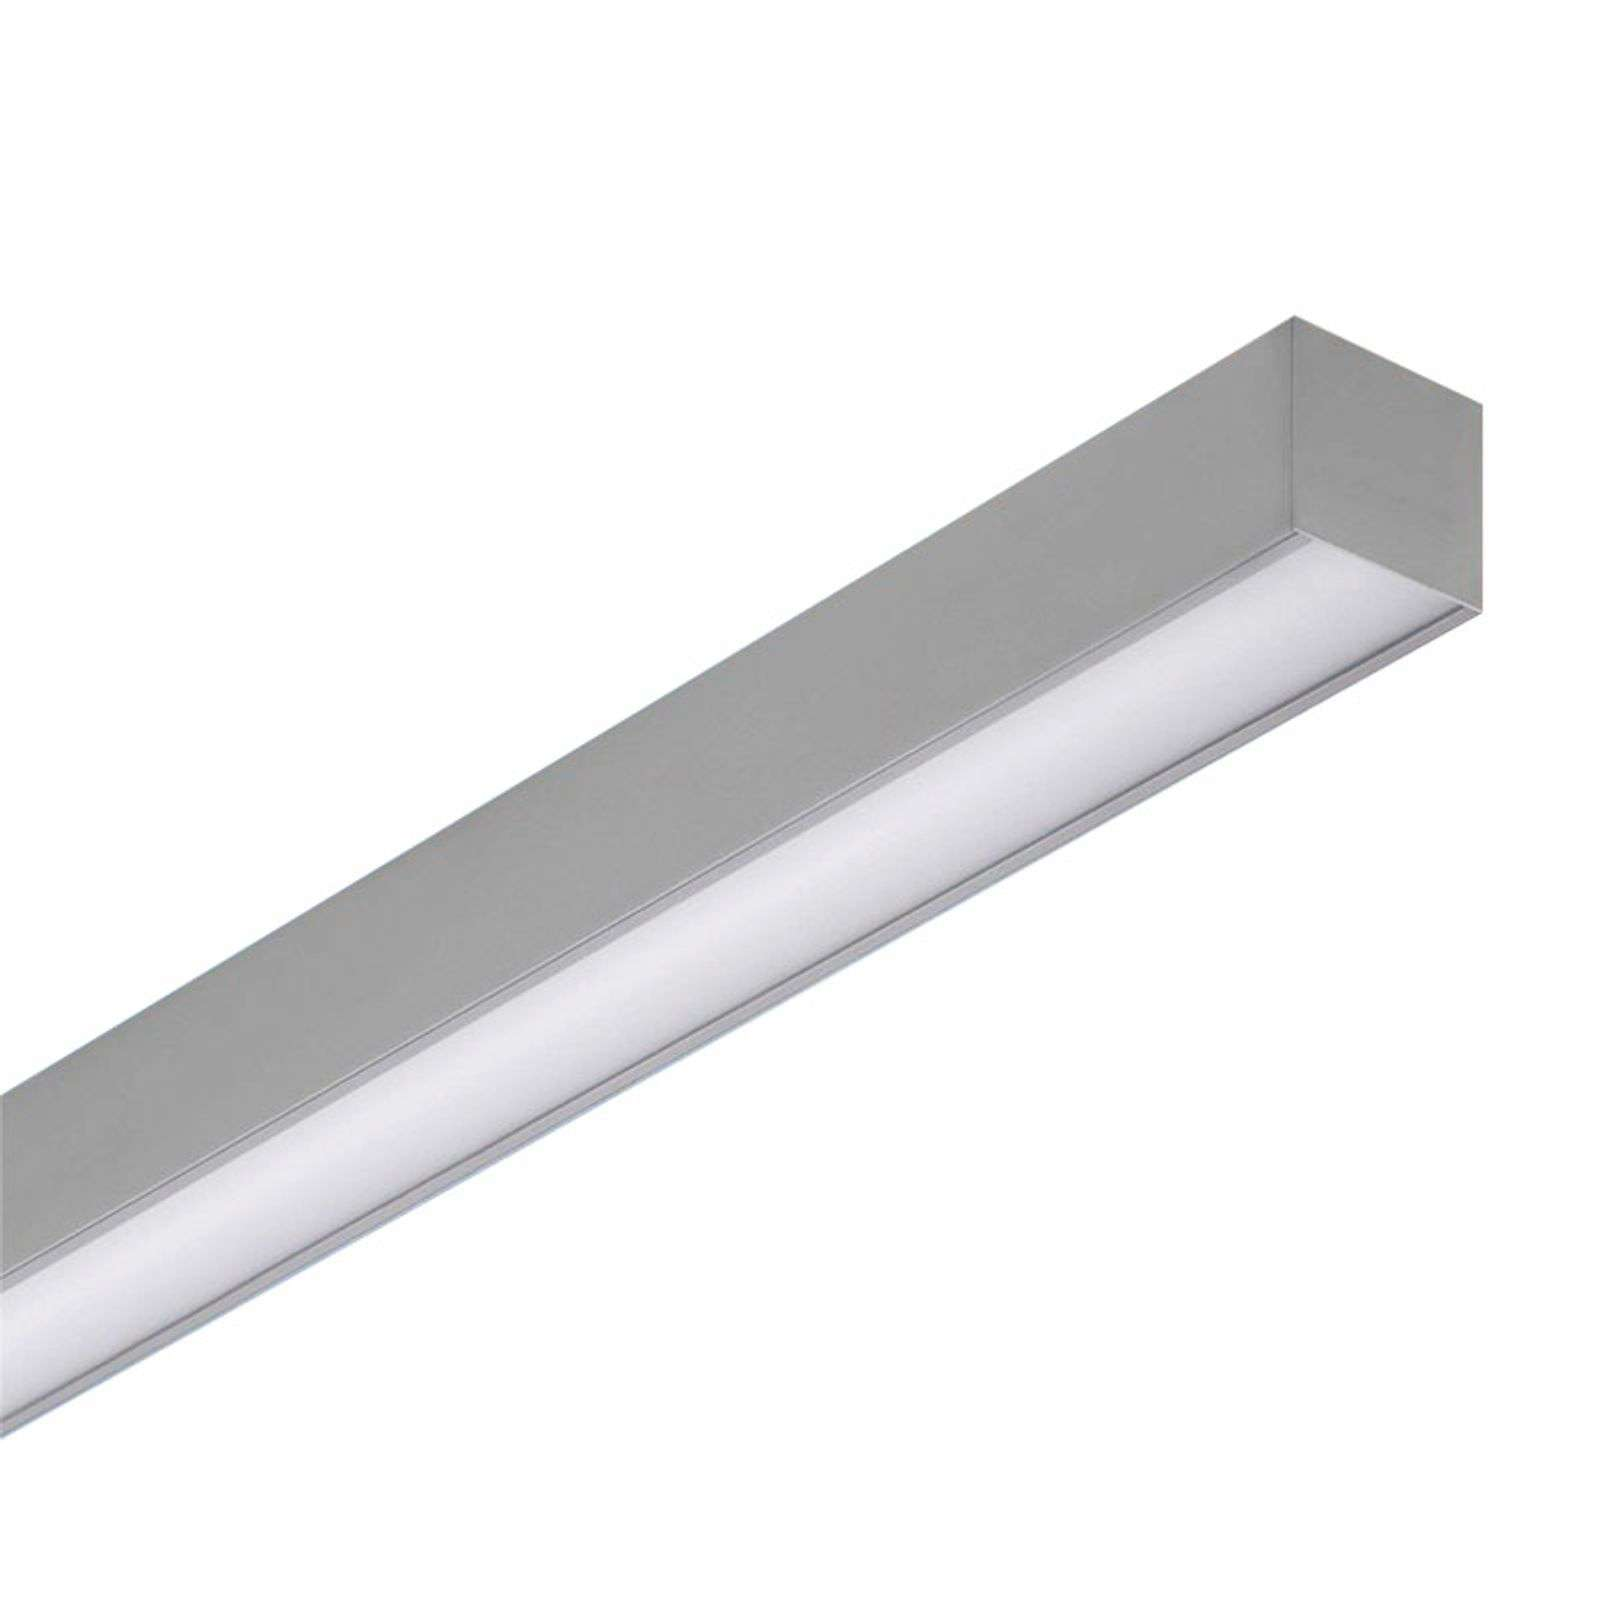 Eficiente lámpara de pared LED LKPW075, 3000K